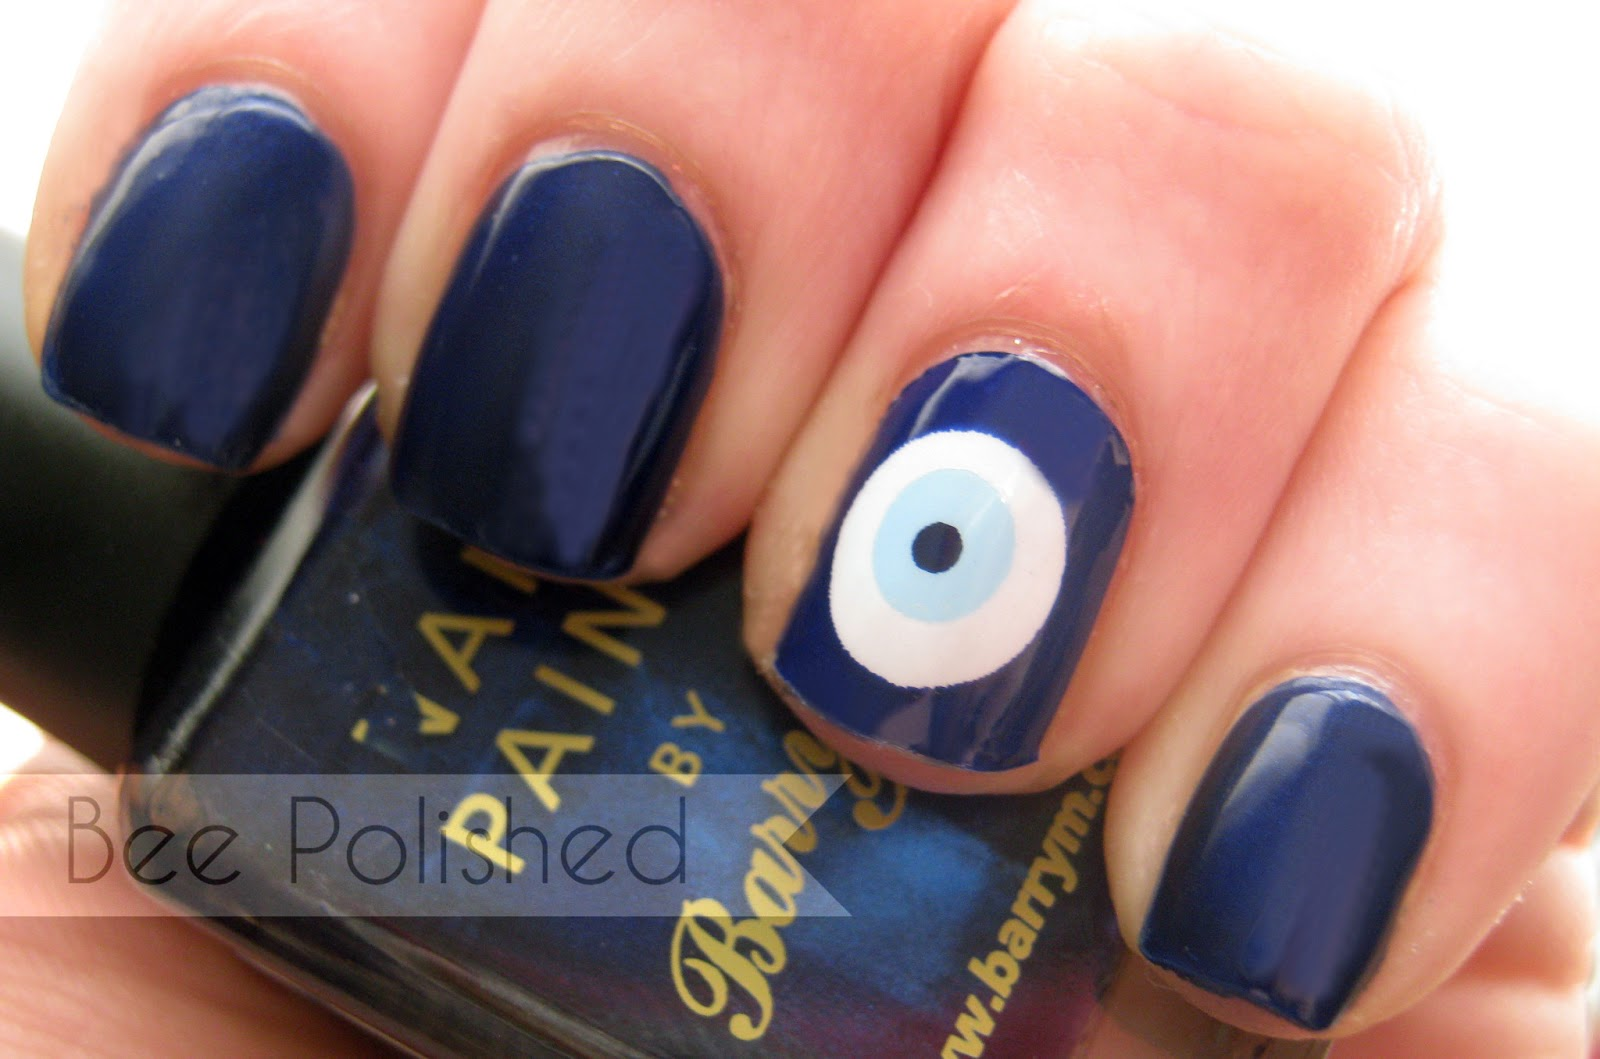 Go Scratch It: The Evil Eye - Bee Polished